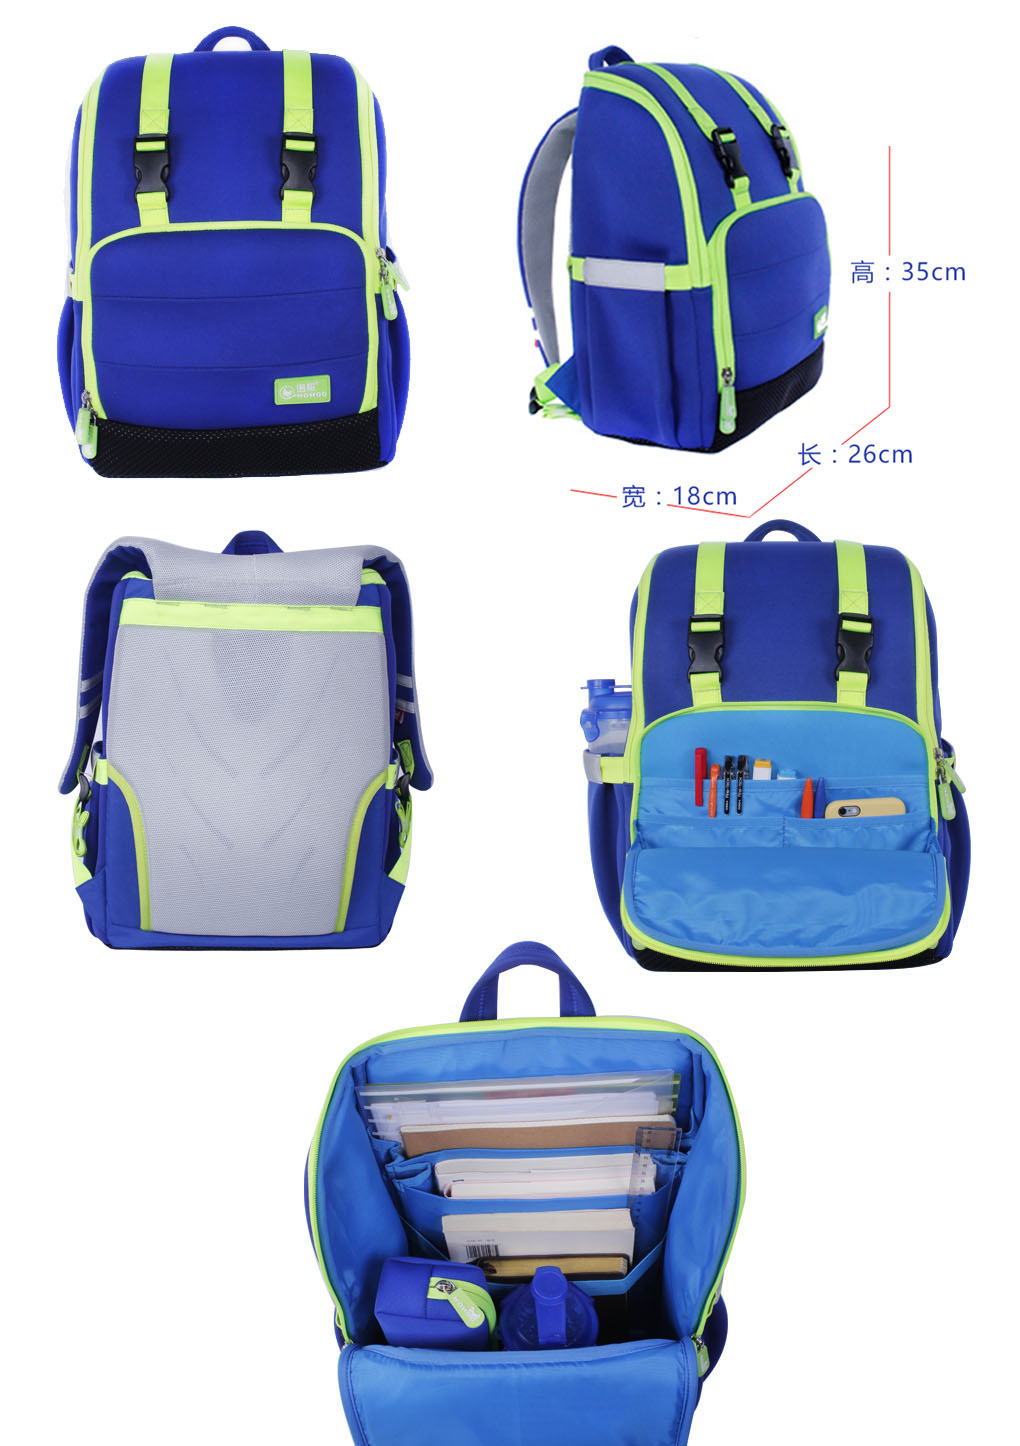 Nohoo Children Products-Nh036 Neoprene Large Capacity Multi-pocket Durable Student School Bag